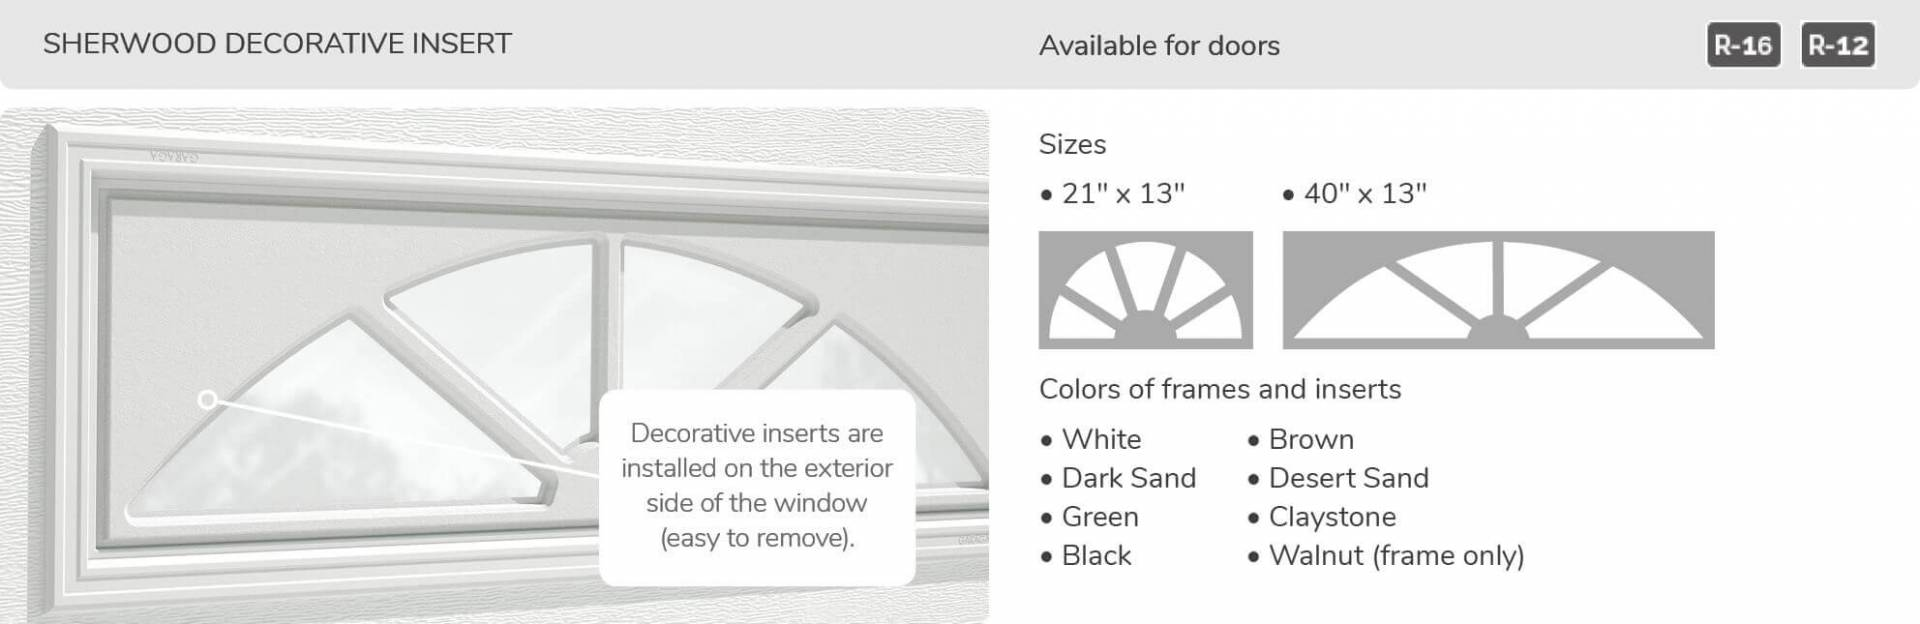 Sherwood Decorative Insert, 21' x 13' and 40' x 13', available for doors R-16 and R-12